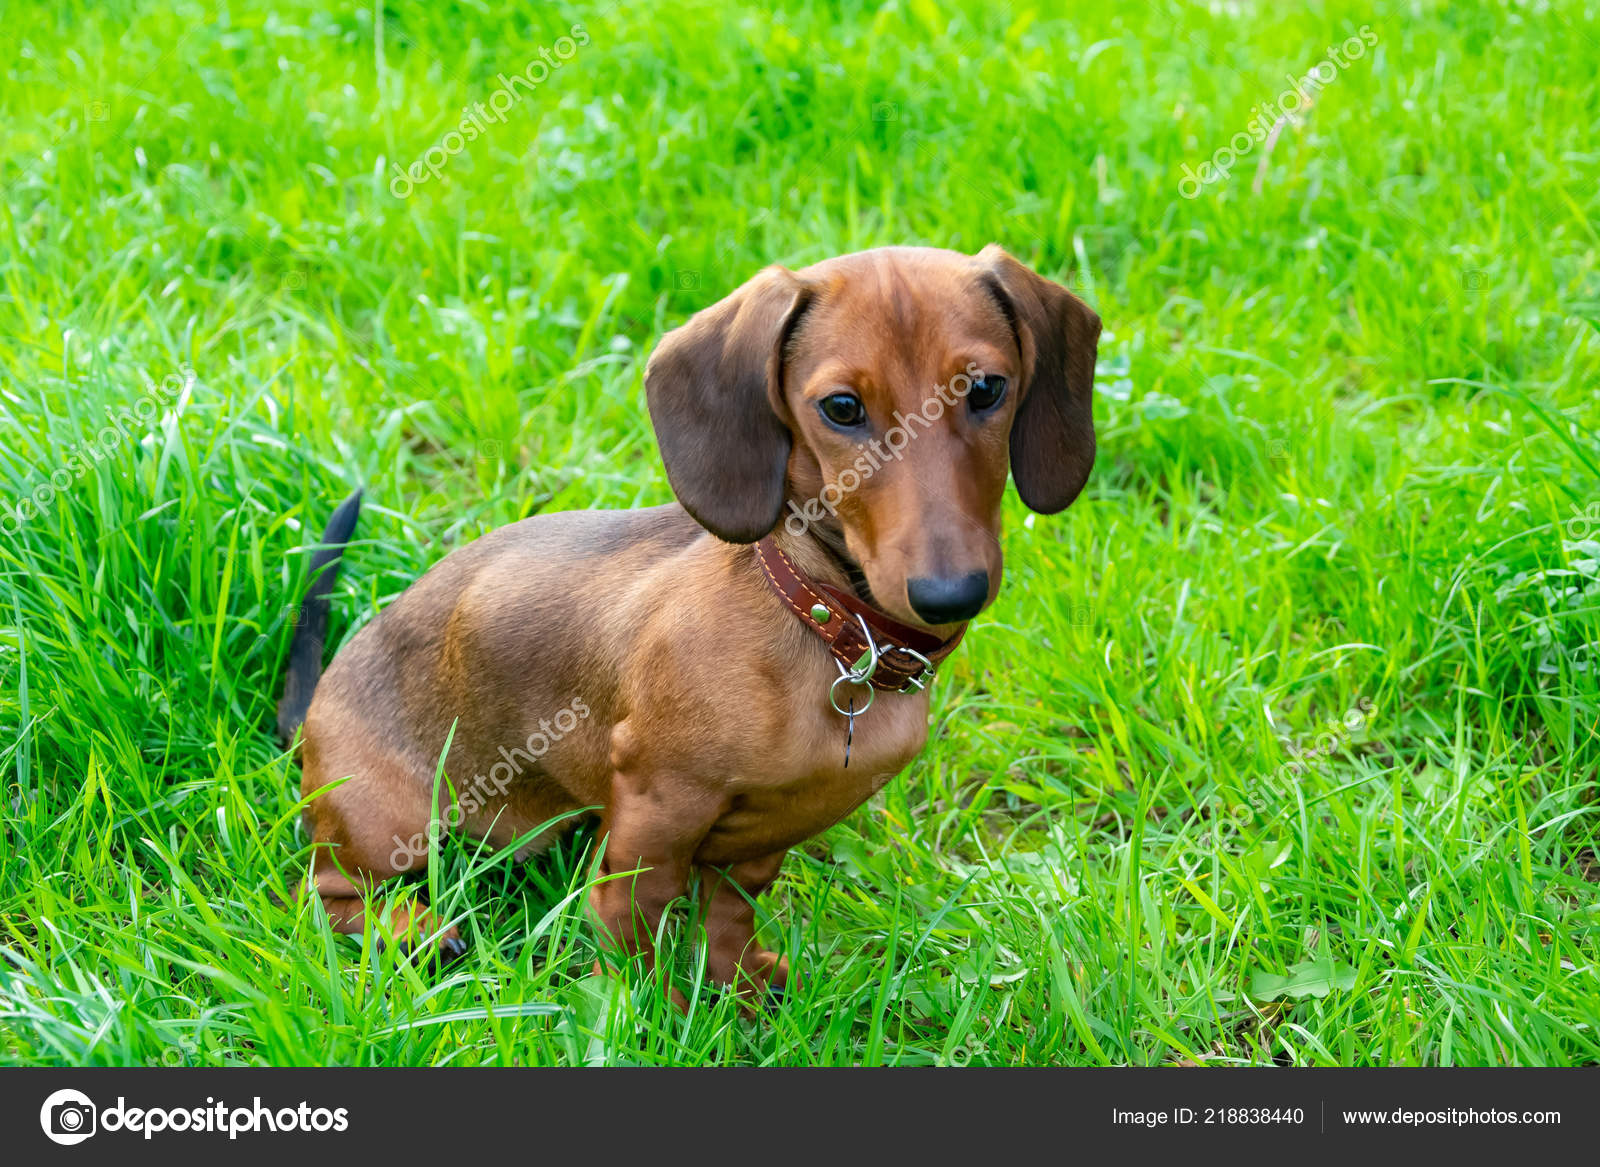 Miniature Dachshund Puppy Its Owner Young Energetic Dog Running Walk Stock Photo C Taisyakorchak 218838440